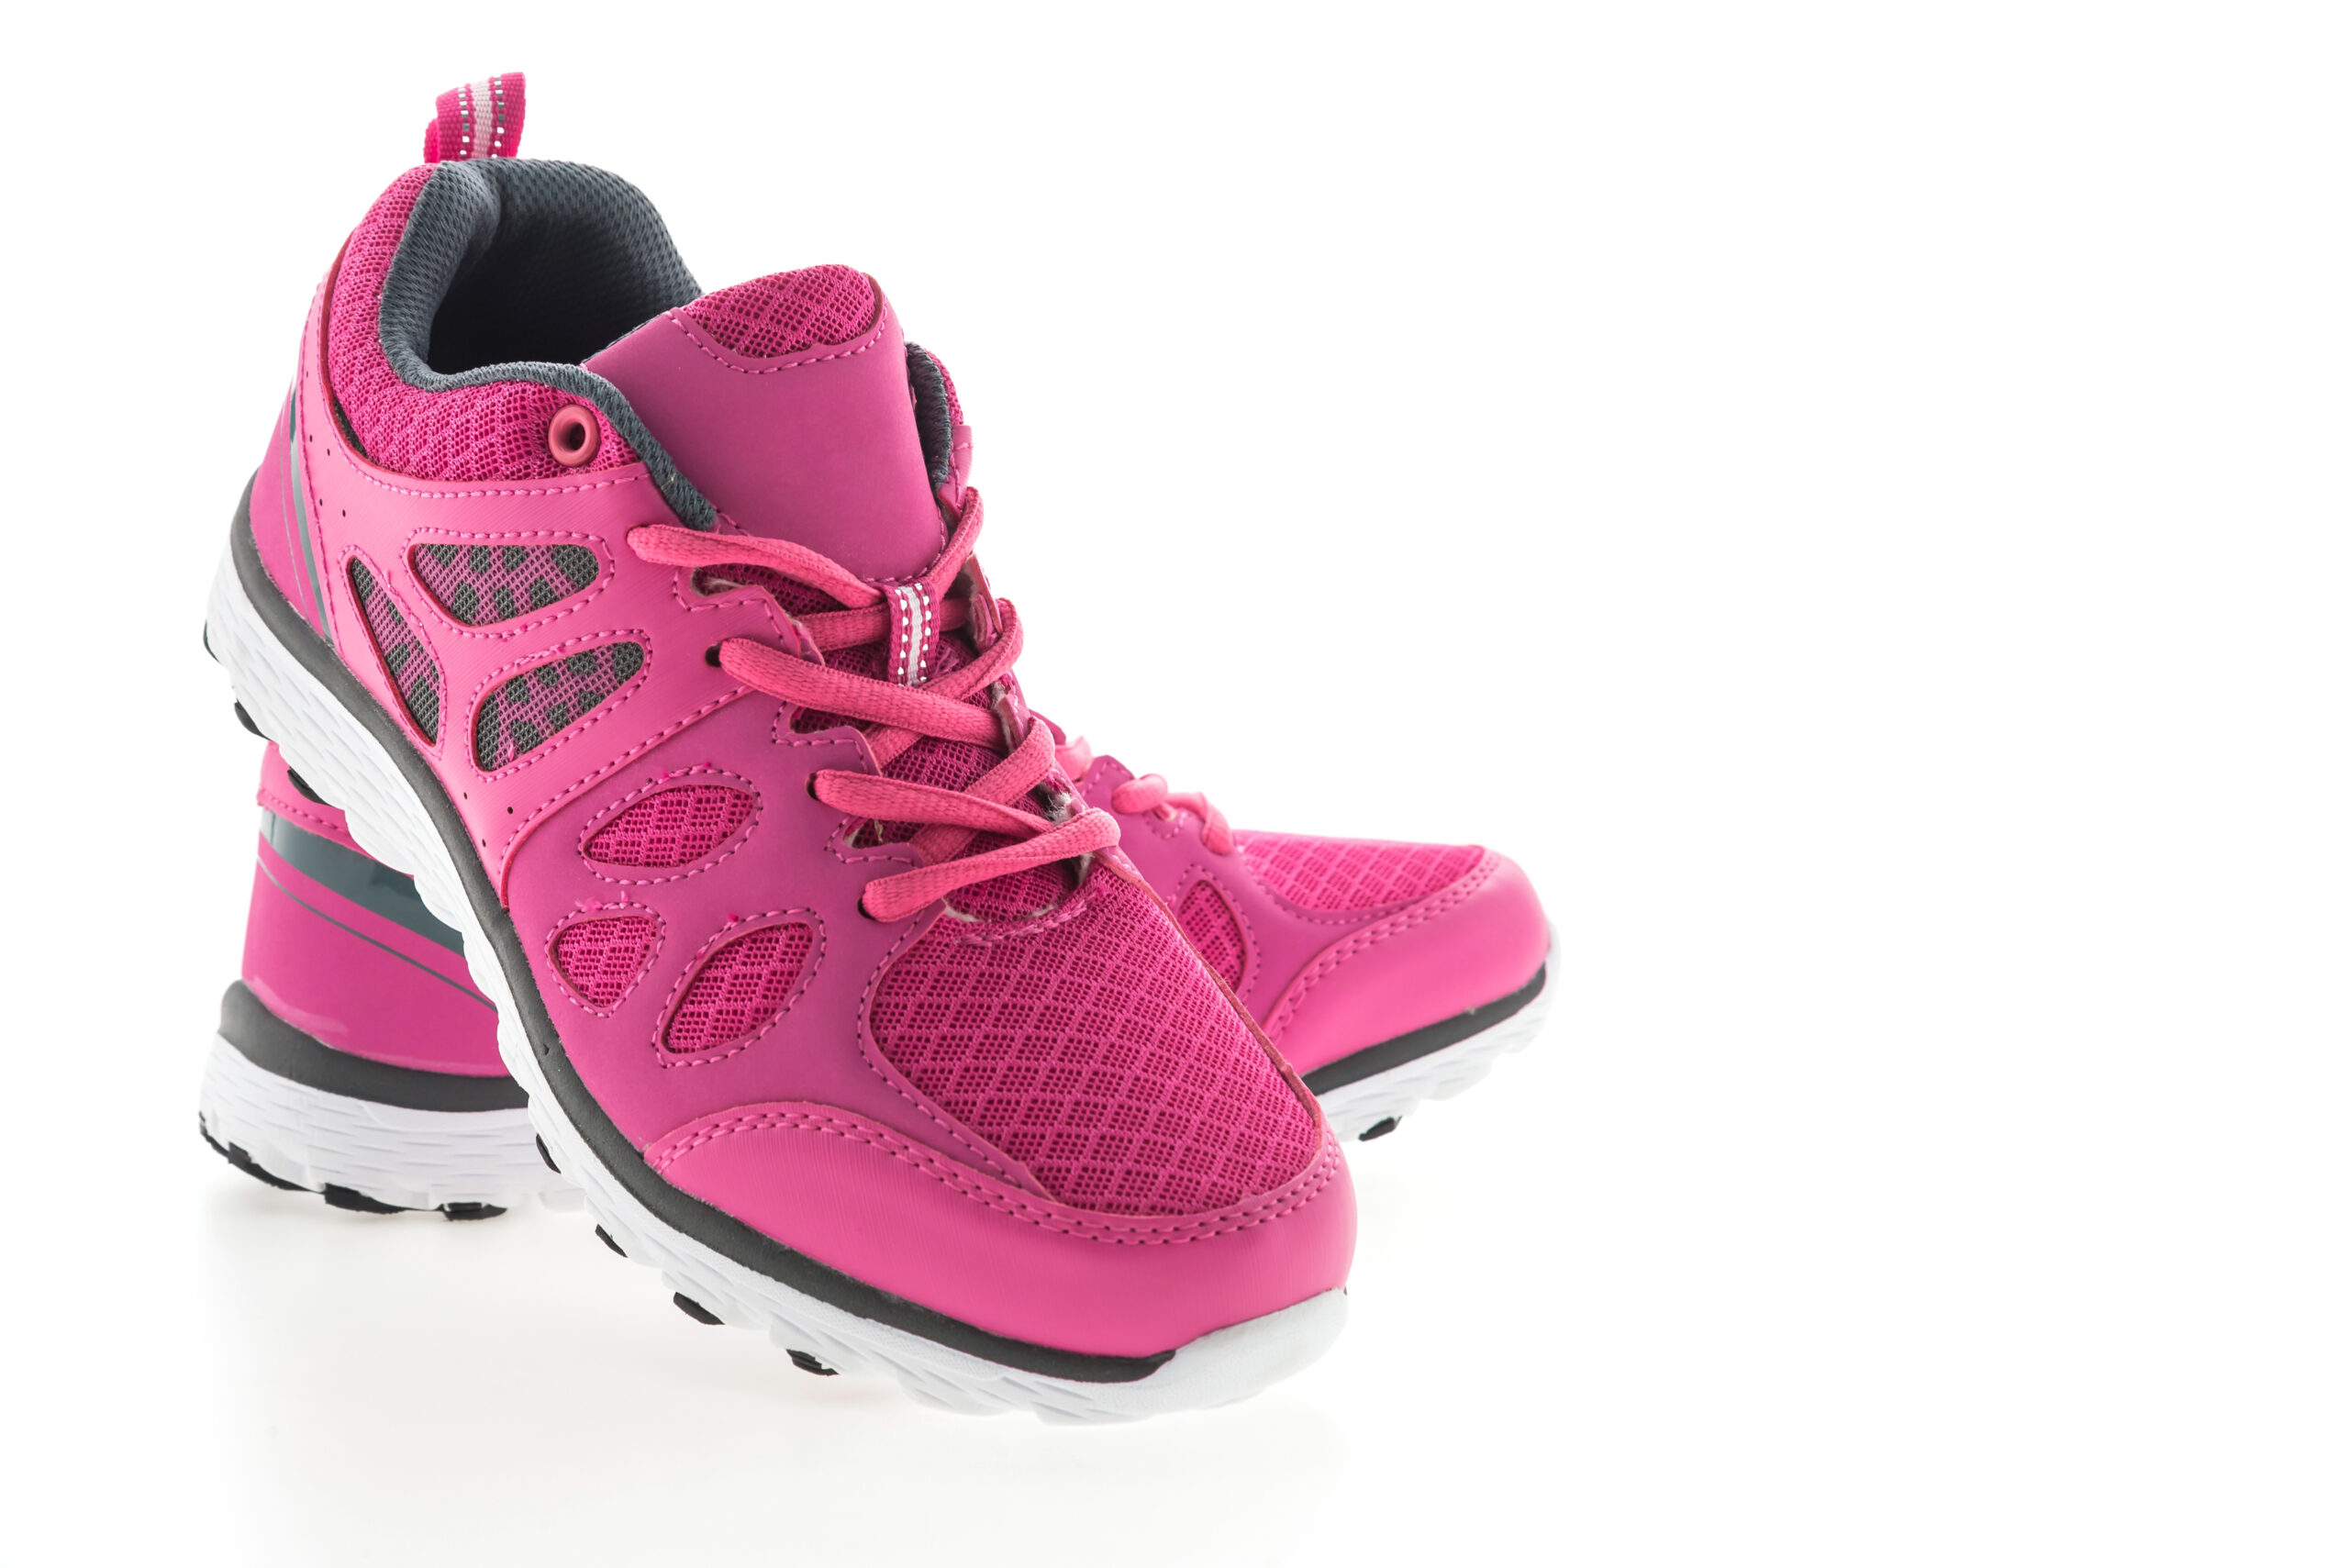 Pink Sport running shoes isolated on white background